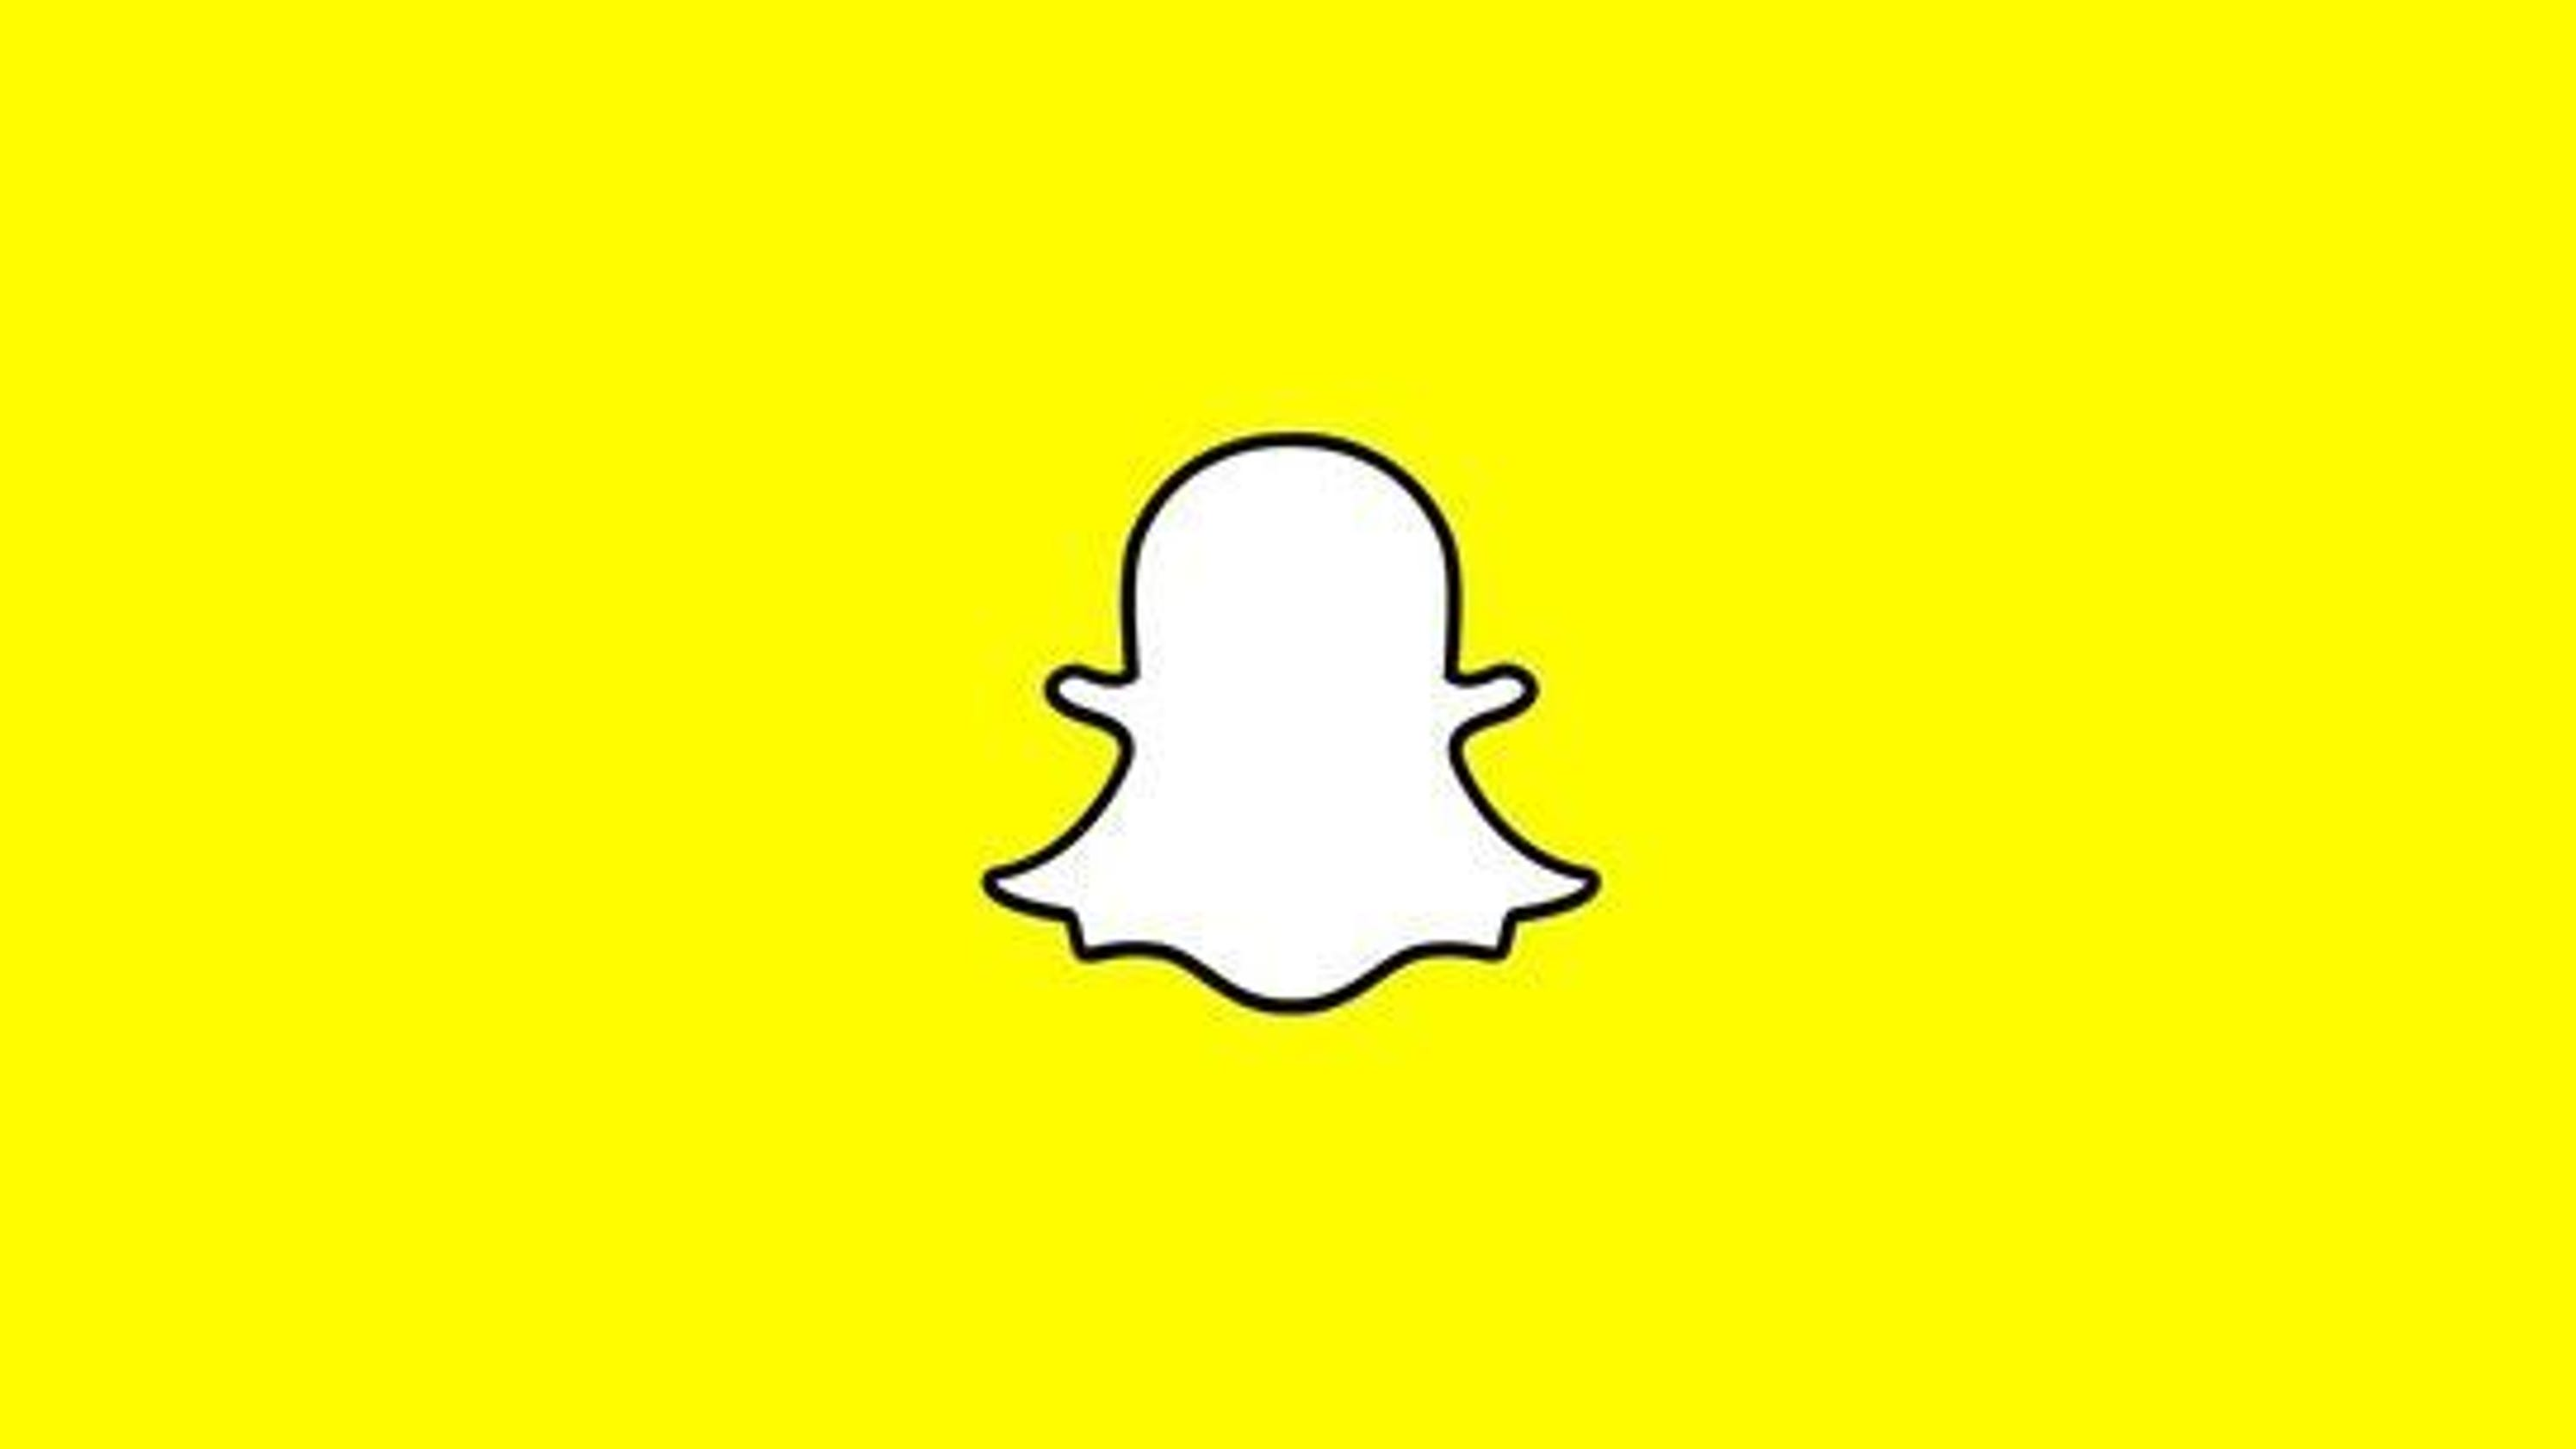 Snap biggest tech ipo since alibaba prices above forecast buycottarizona Image collections